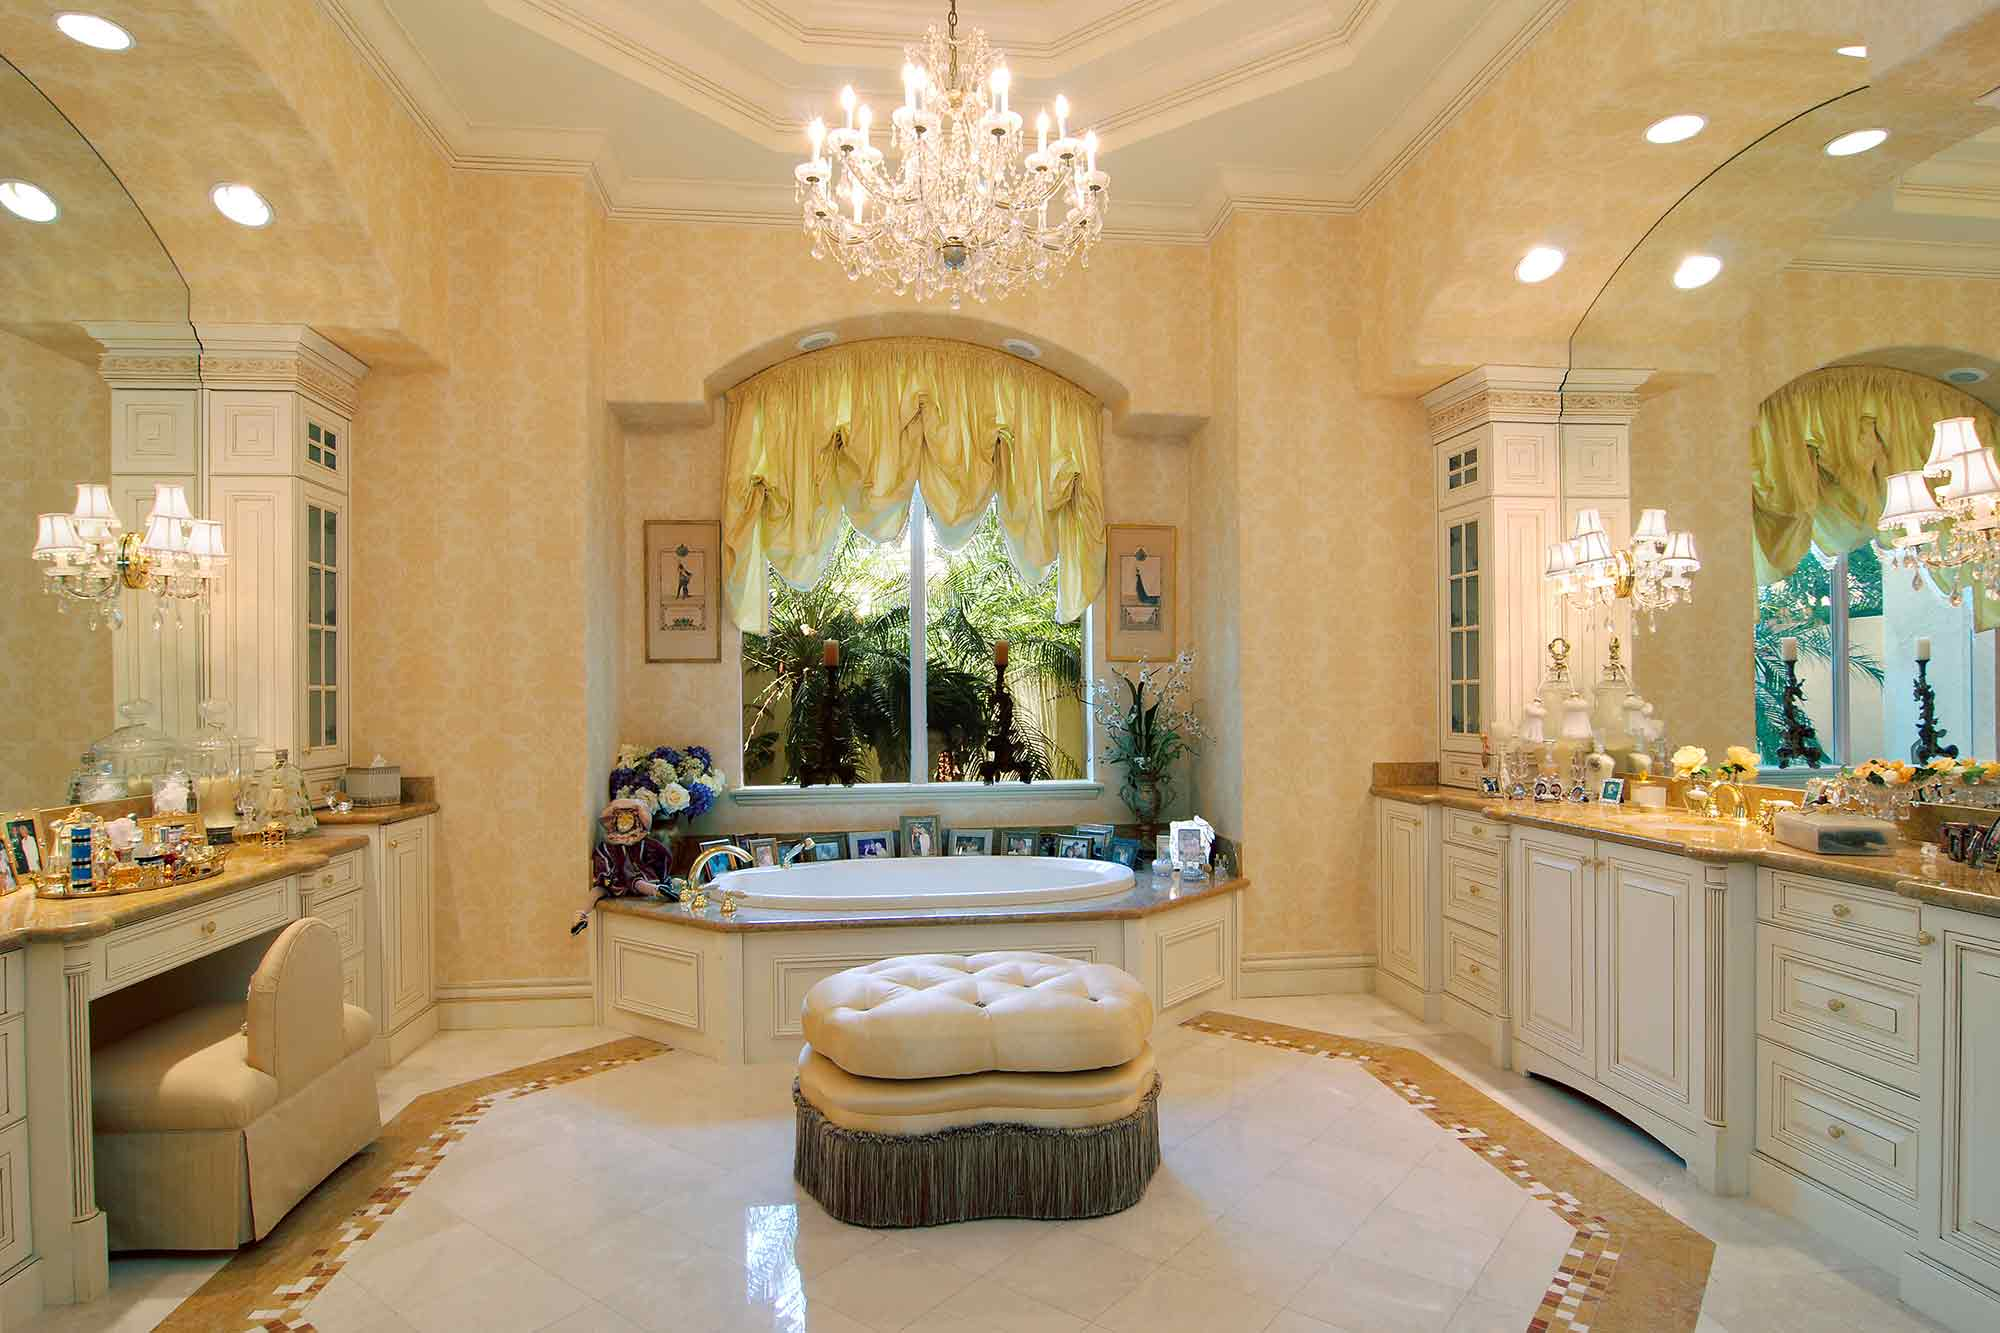 Estate in palm beach gardens annie santulli designs luxury palm beach interior design Palm beach interior designers